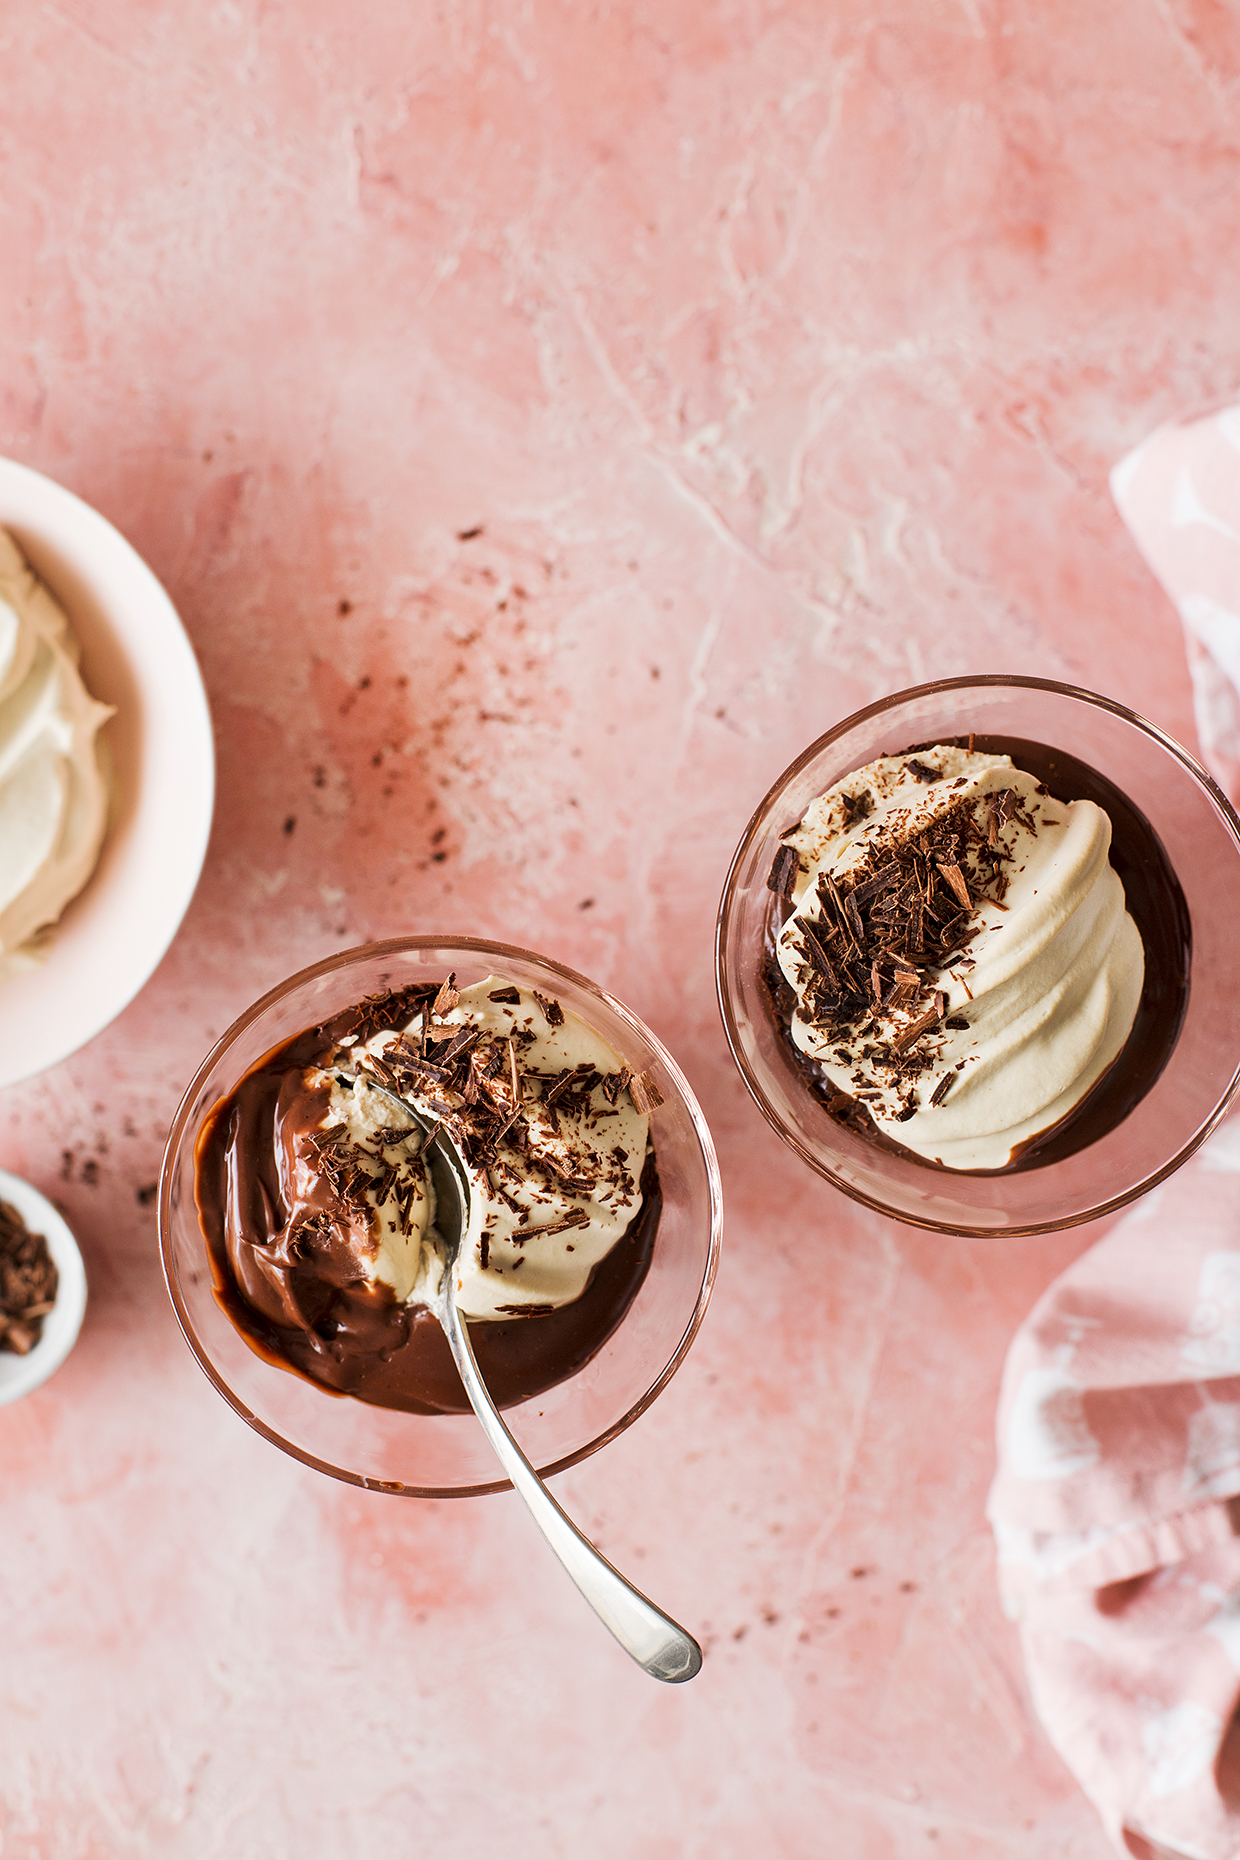 Chocolate Pudding with Espresso Whipped Cream